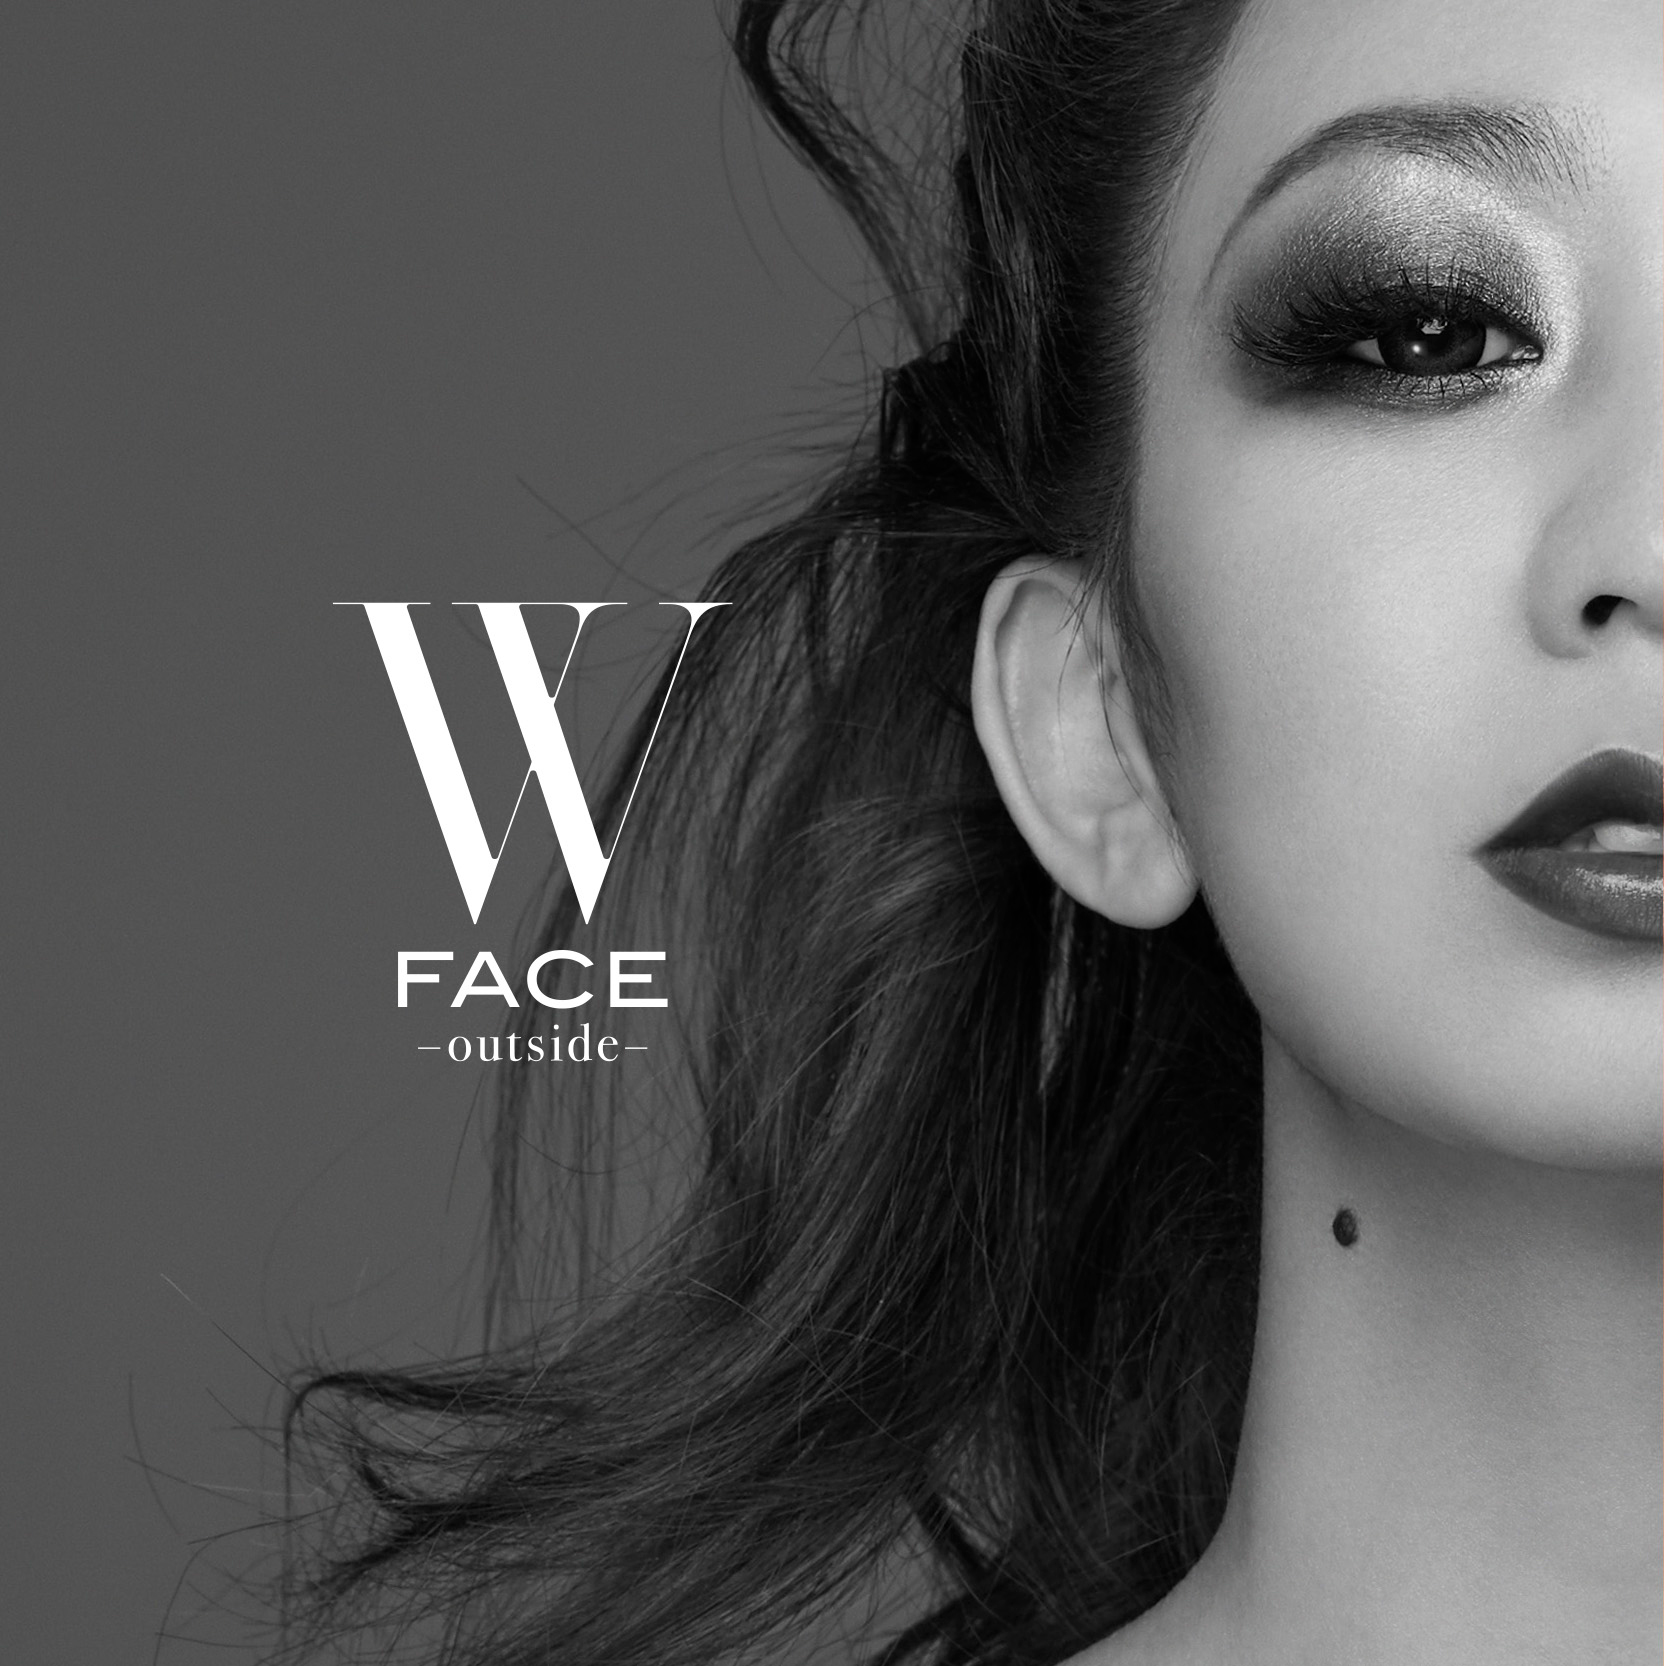 『W FACE ~ outside ~』